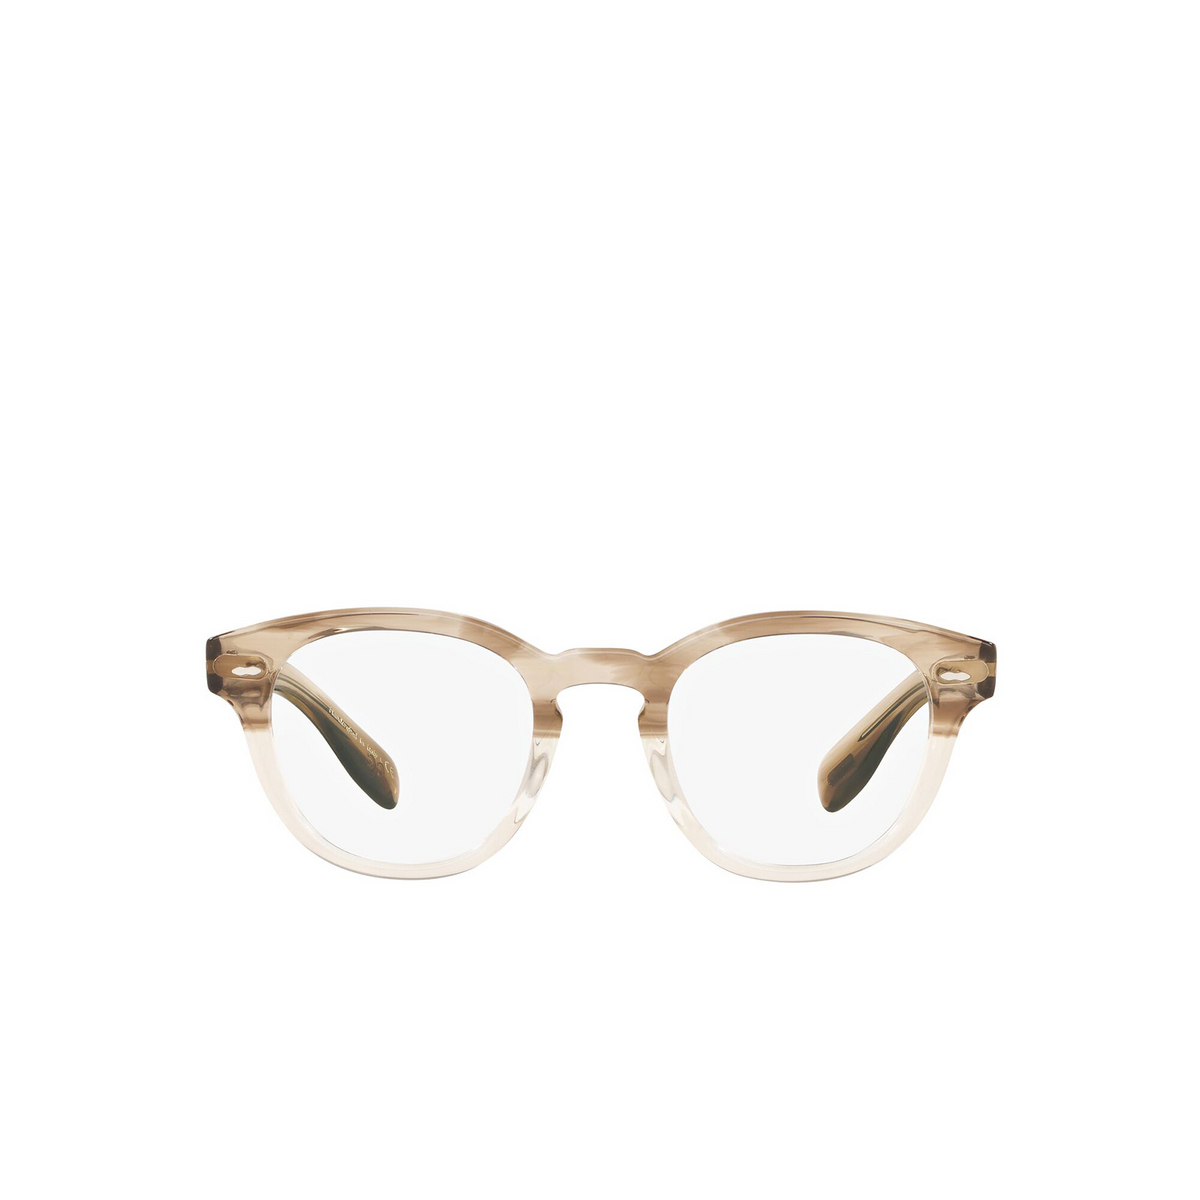 Oliver Peoples® Square Eyeglasses: Cary Grant OV5413U color Military Vsb 1647 - front view.